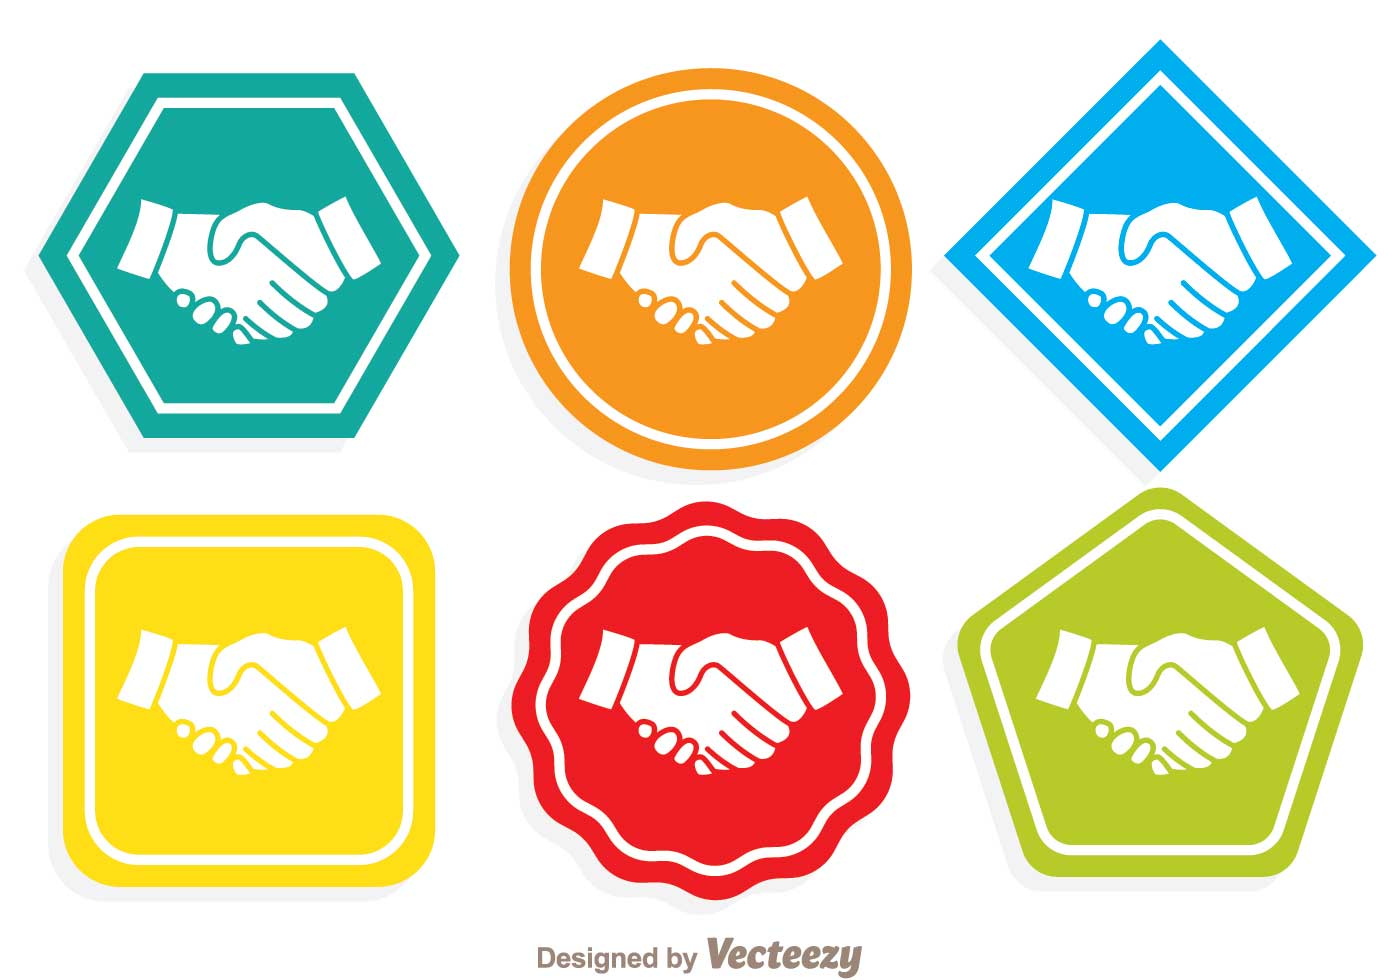 Colorful Handshake Icons - Download Free Vector Art, Stock ...